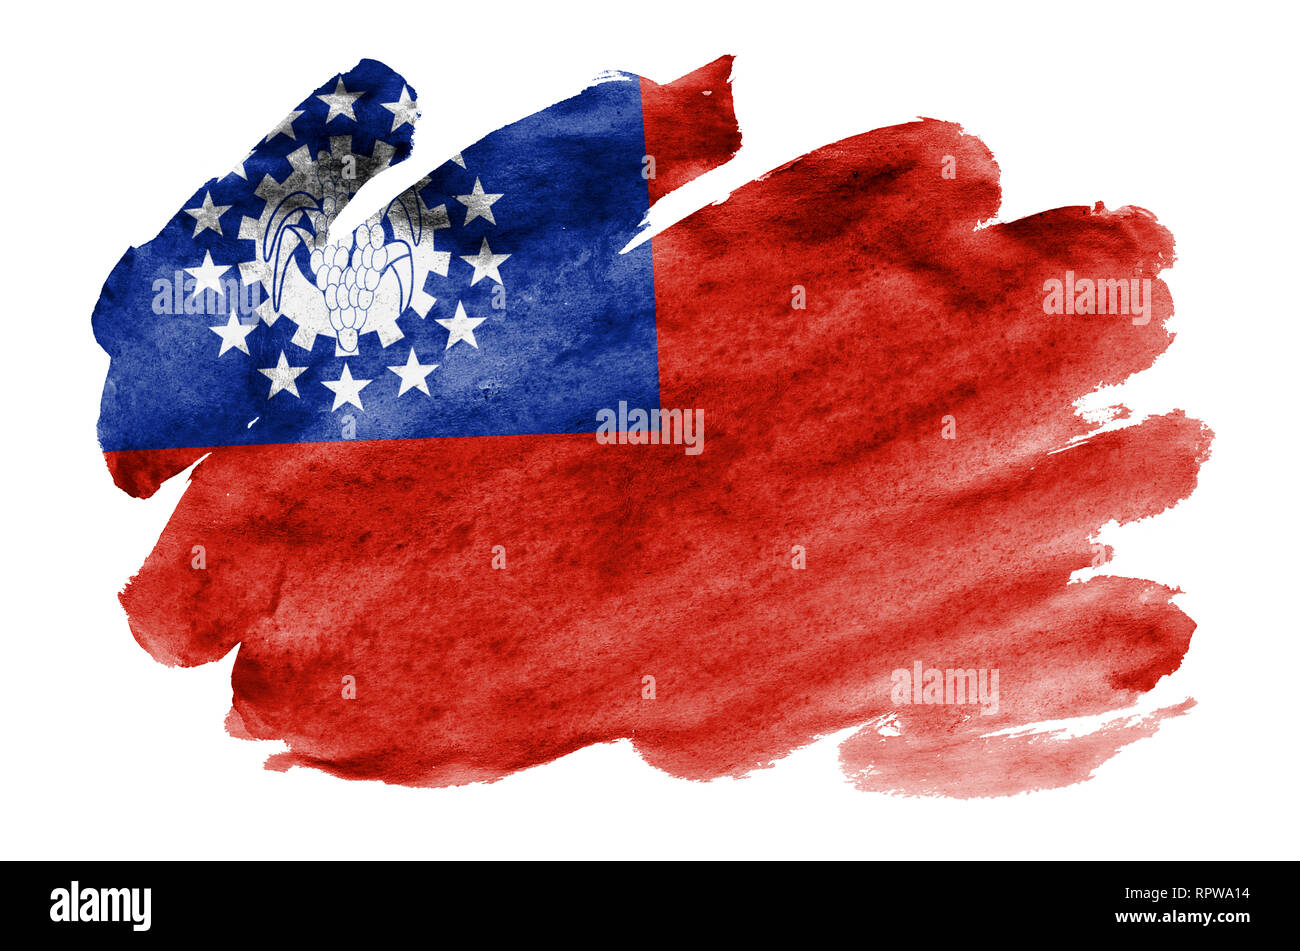 Myanmar flag  is depicted in liquid watercolor style isolated on white background. Careless paint shading with image of national flag. Independence Da Stock Photo